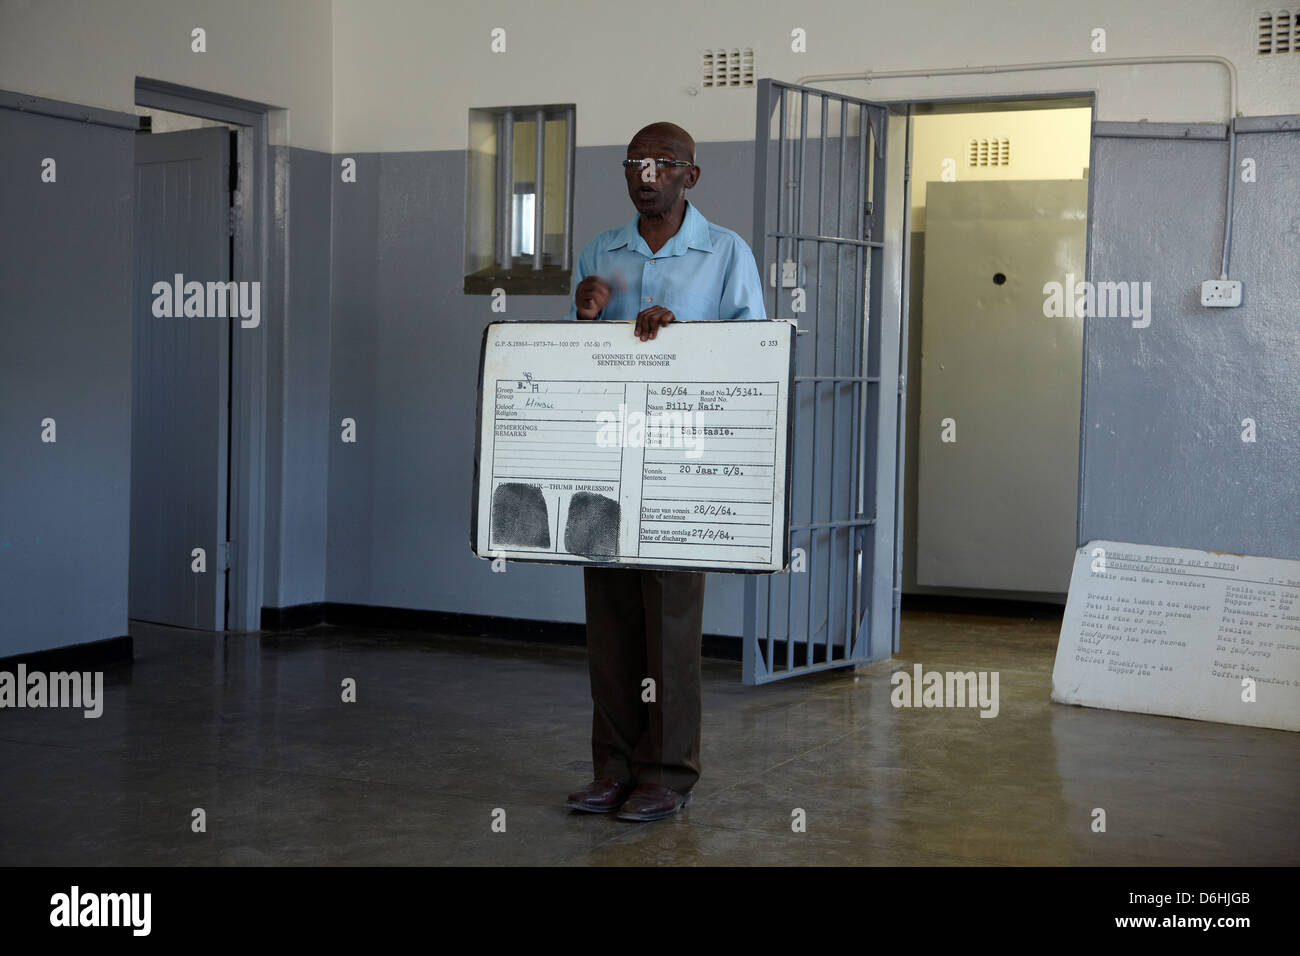 Tour guide and ex-political prisoner inmate, Robben Island Prison, Table Bay, Cape Town, South Africa - Stock Image